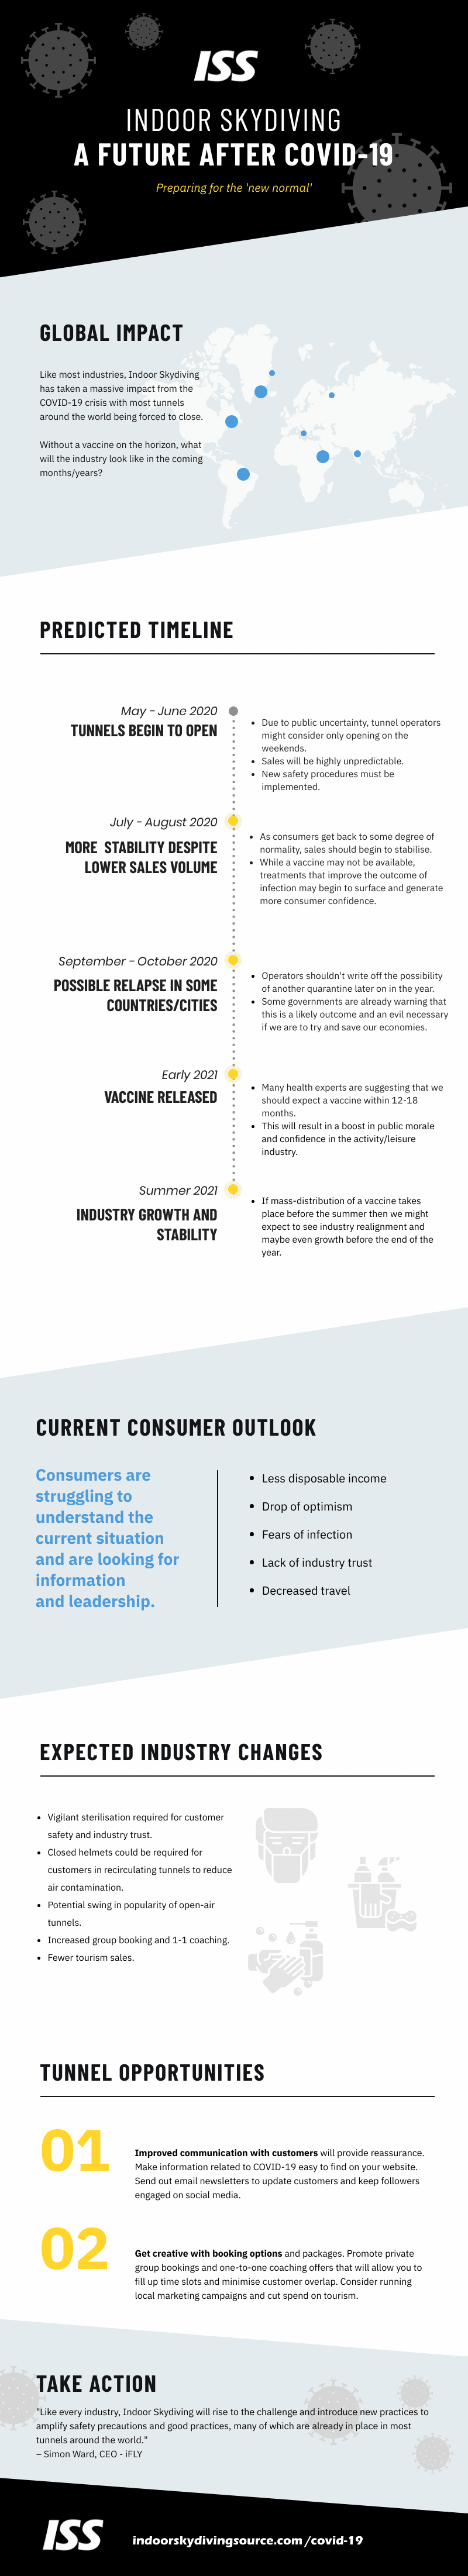 infographic - indoor skydiving industry after COVID-19